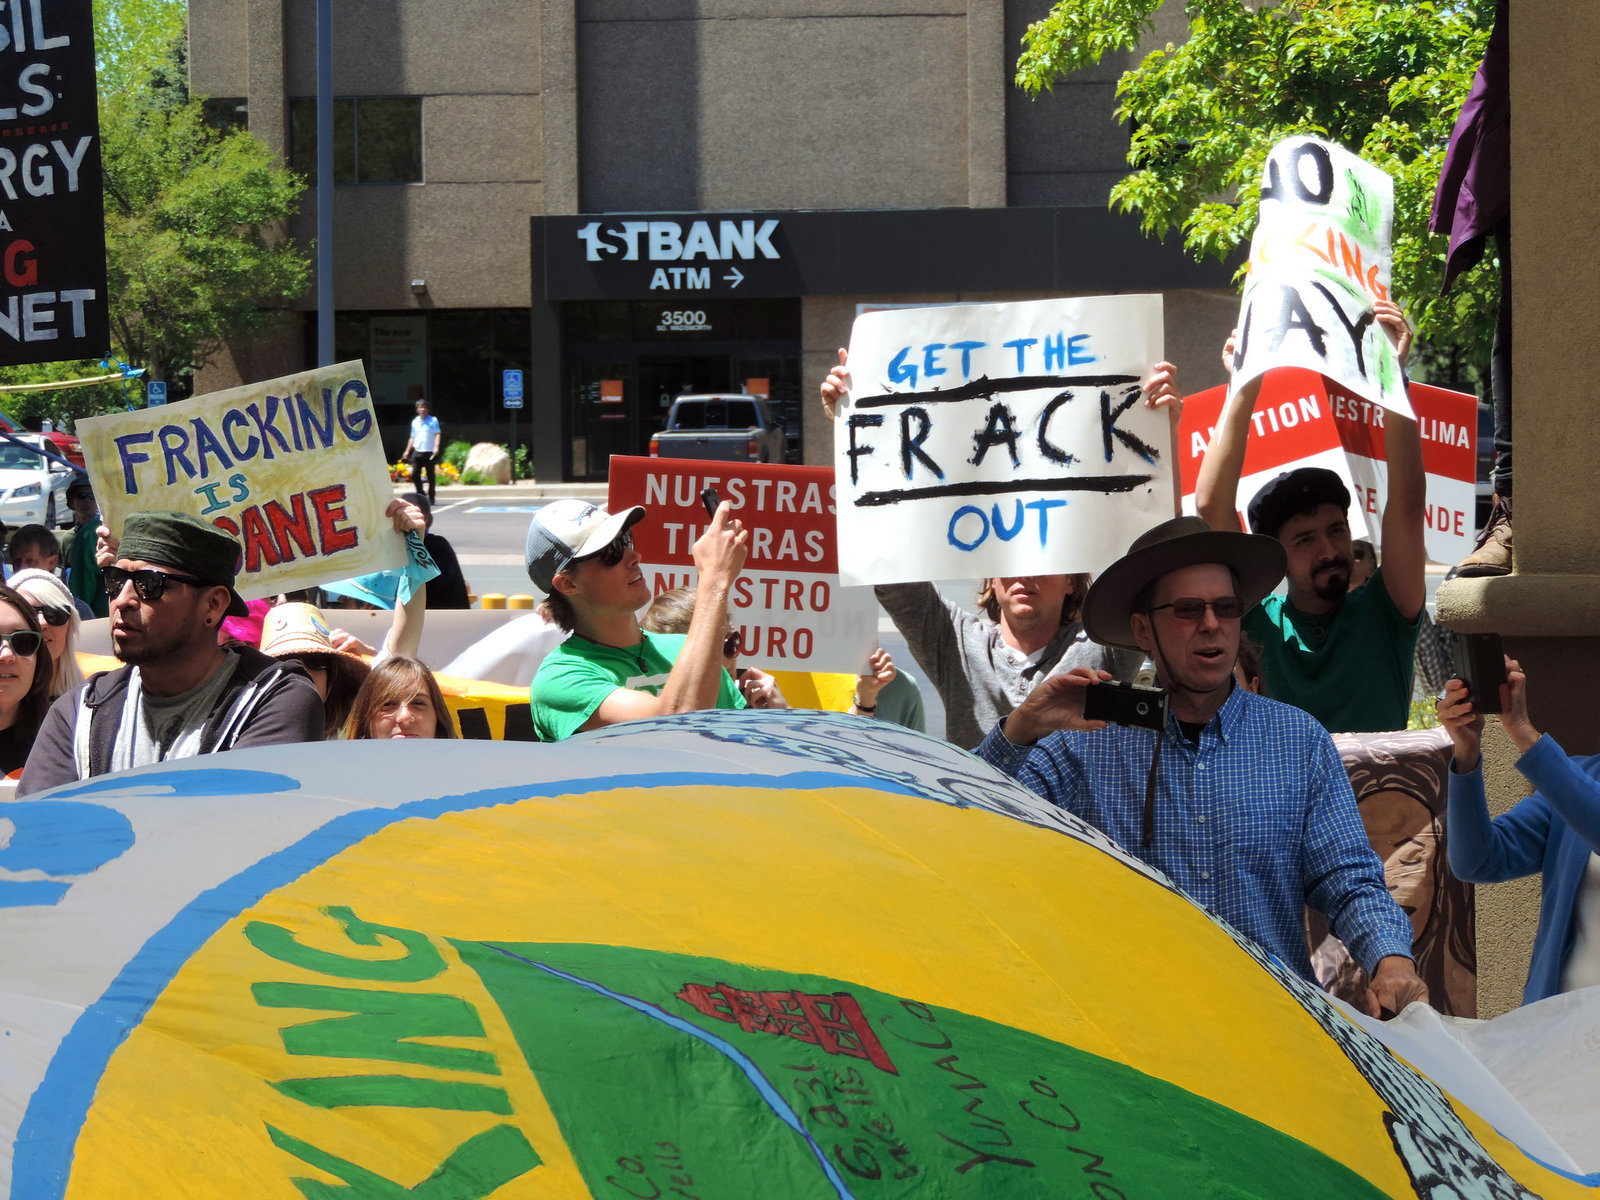 Colorado anti-fracking activists rally in Denver